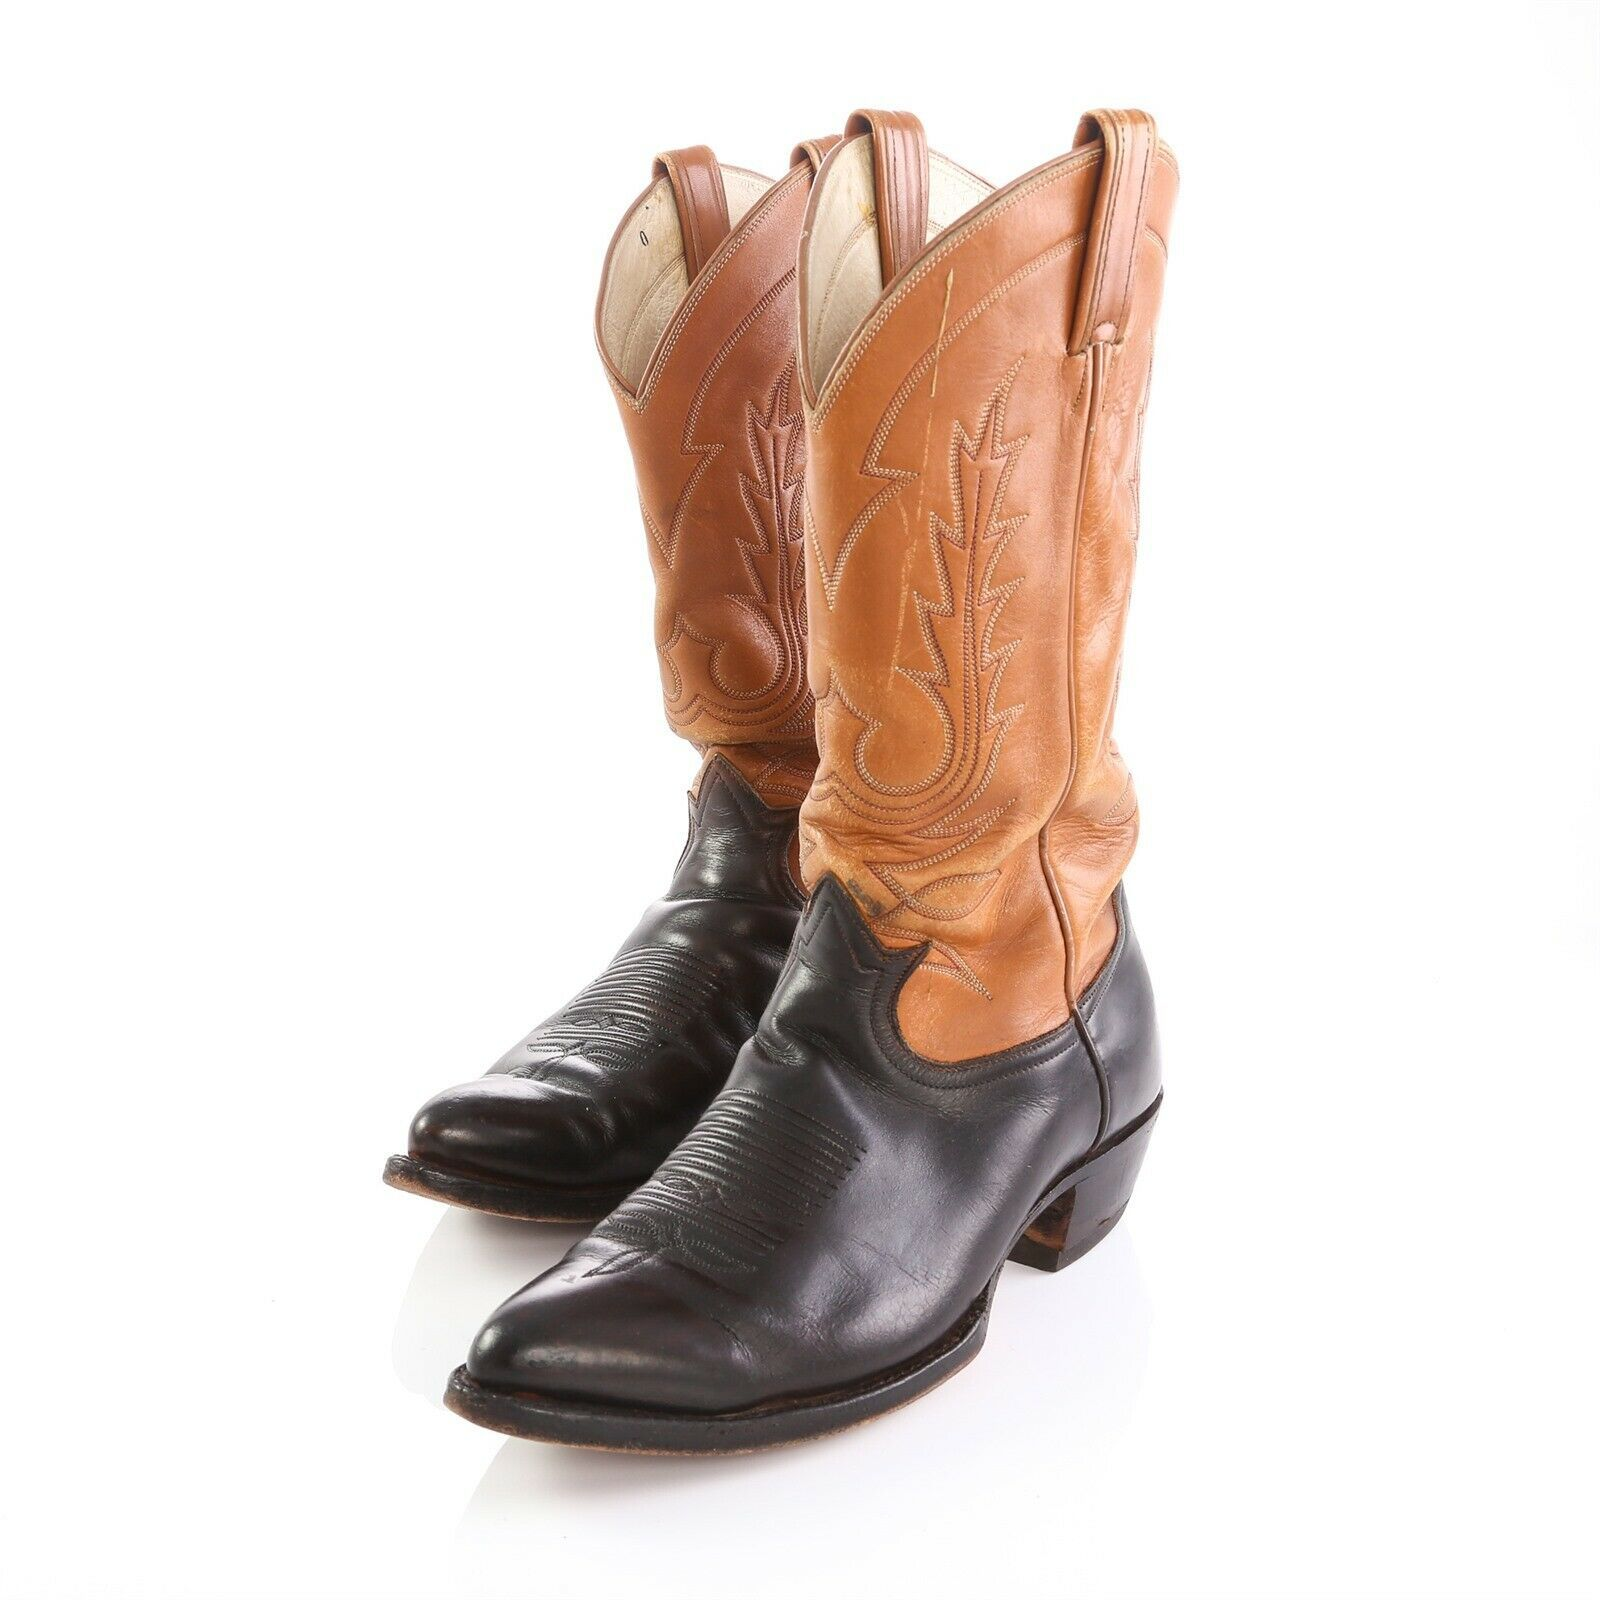 74a68363df3 Tony Lama Brown Black Leather Cowboy Western and 50 similar items